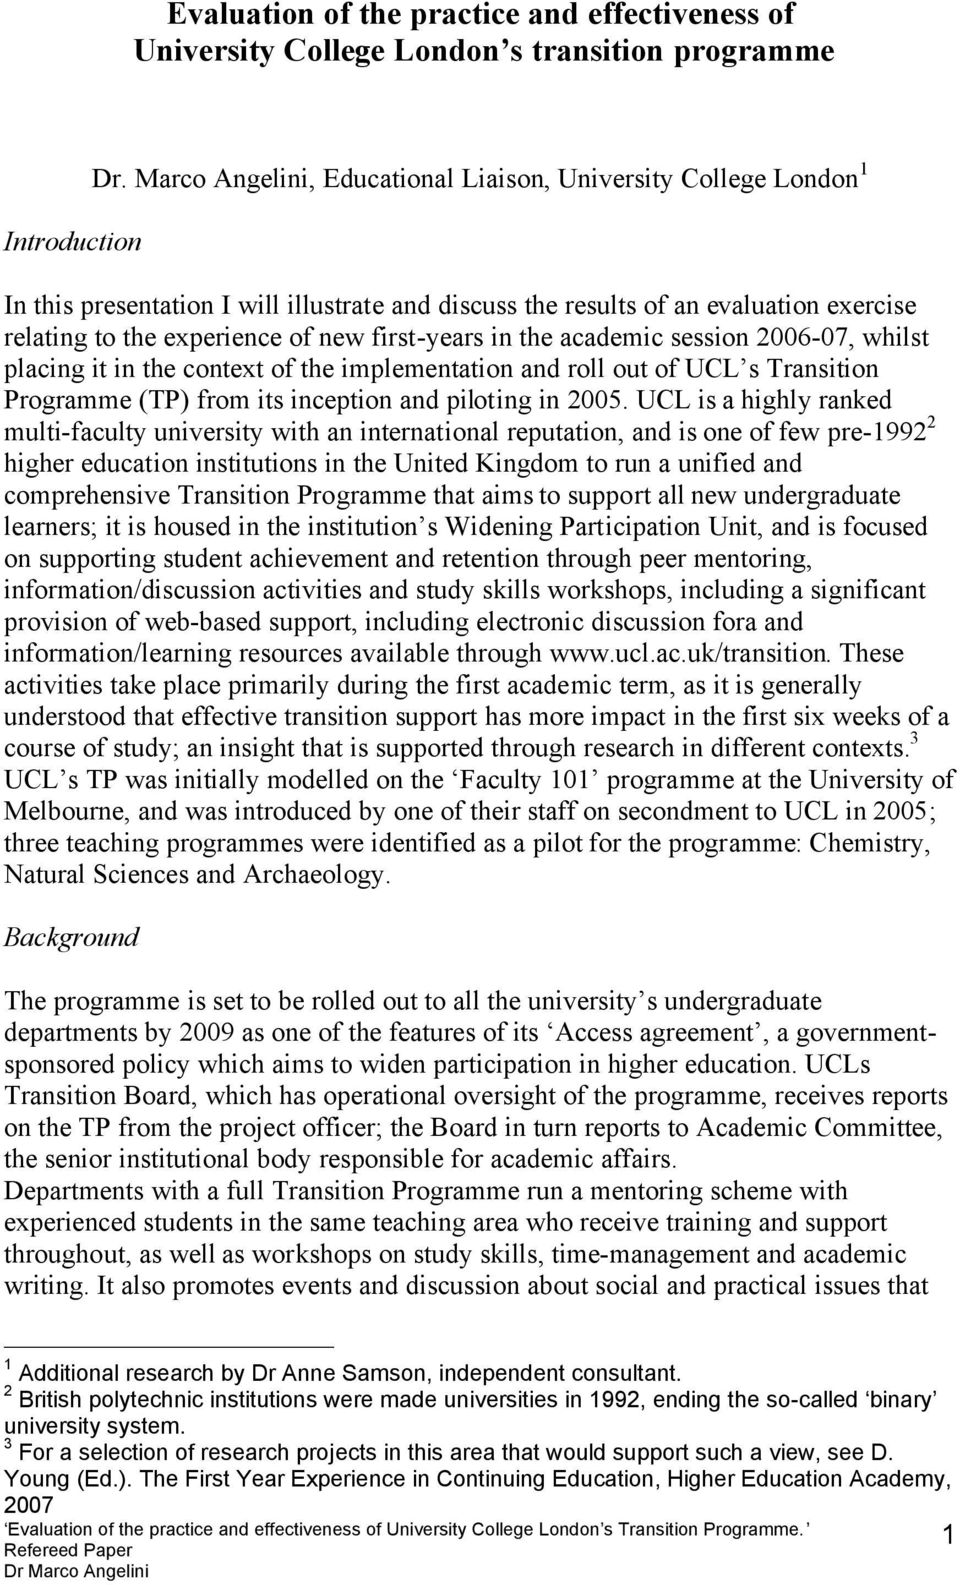 in the academic session 2006-07, whilst placing it in the context of the implementation and roll out of UCL s Transition Programme (TP) from its inception and piloting in 2005.